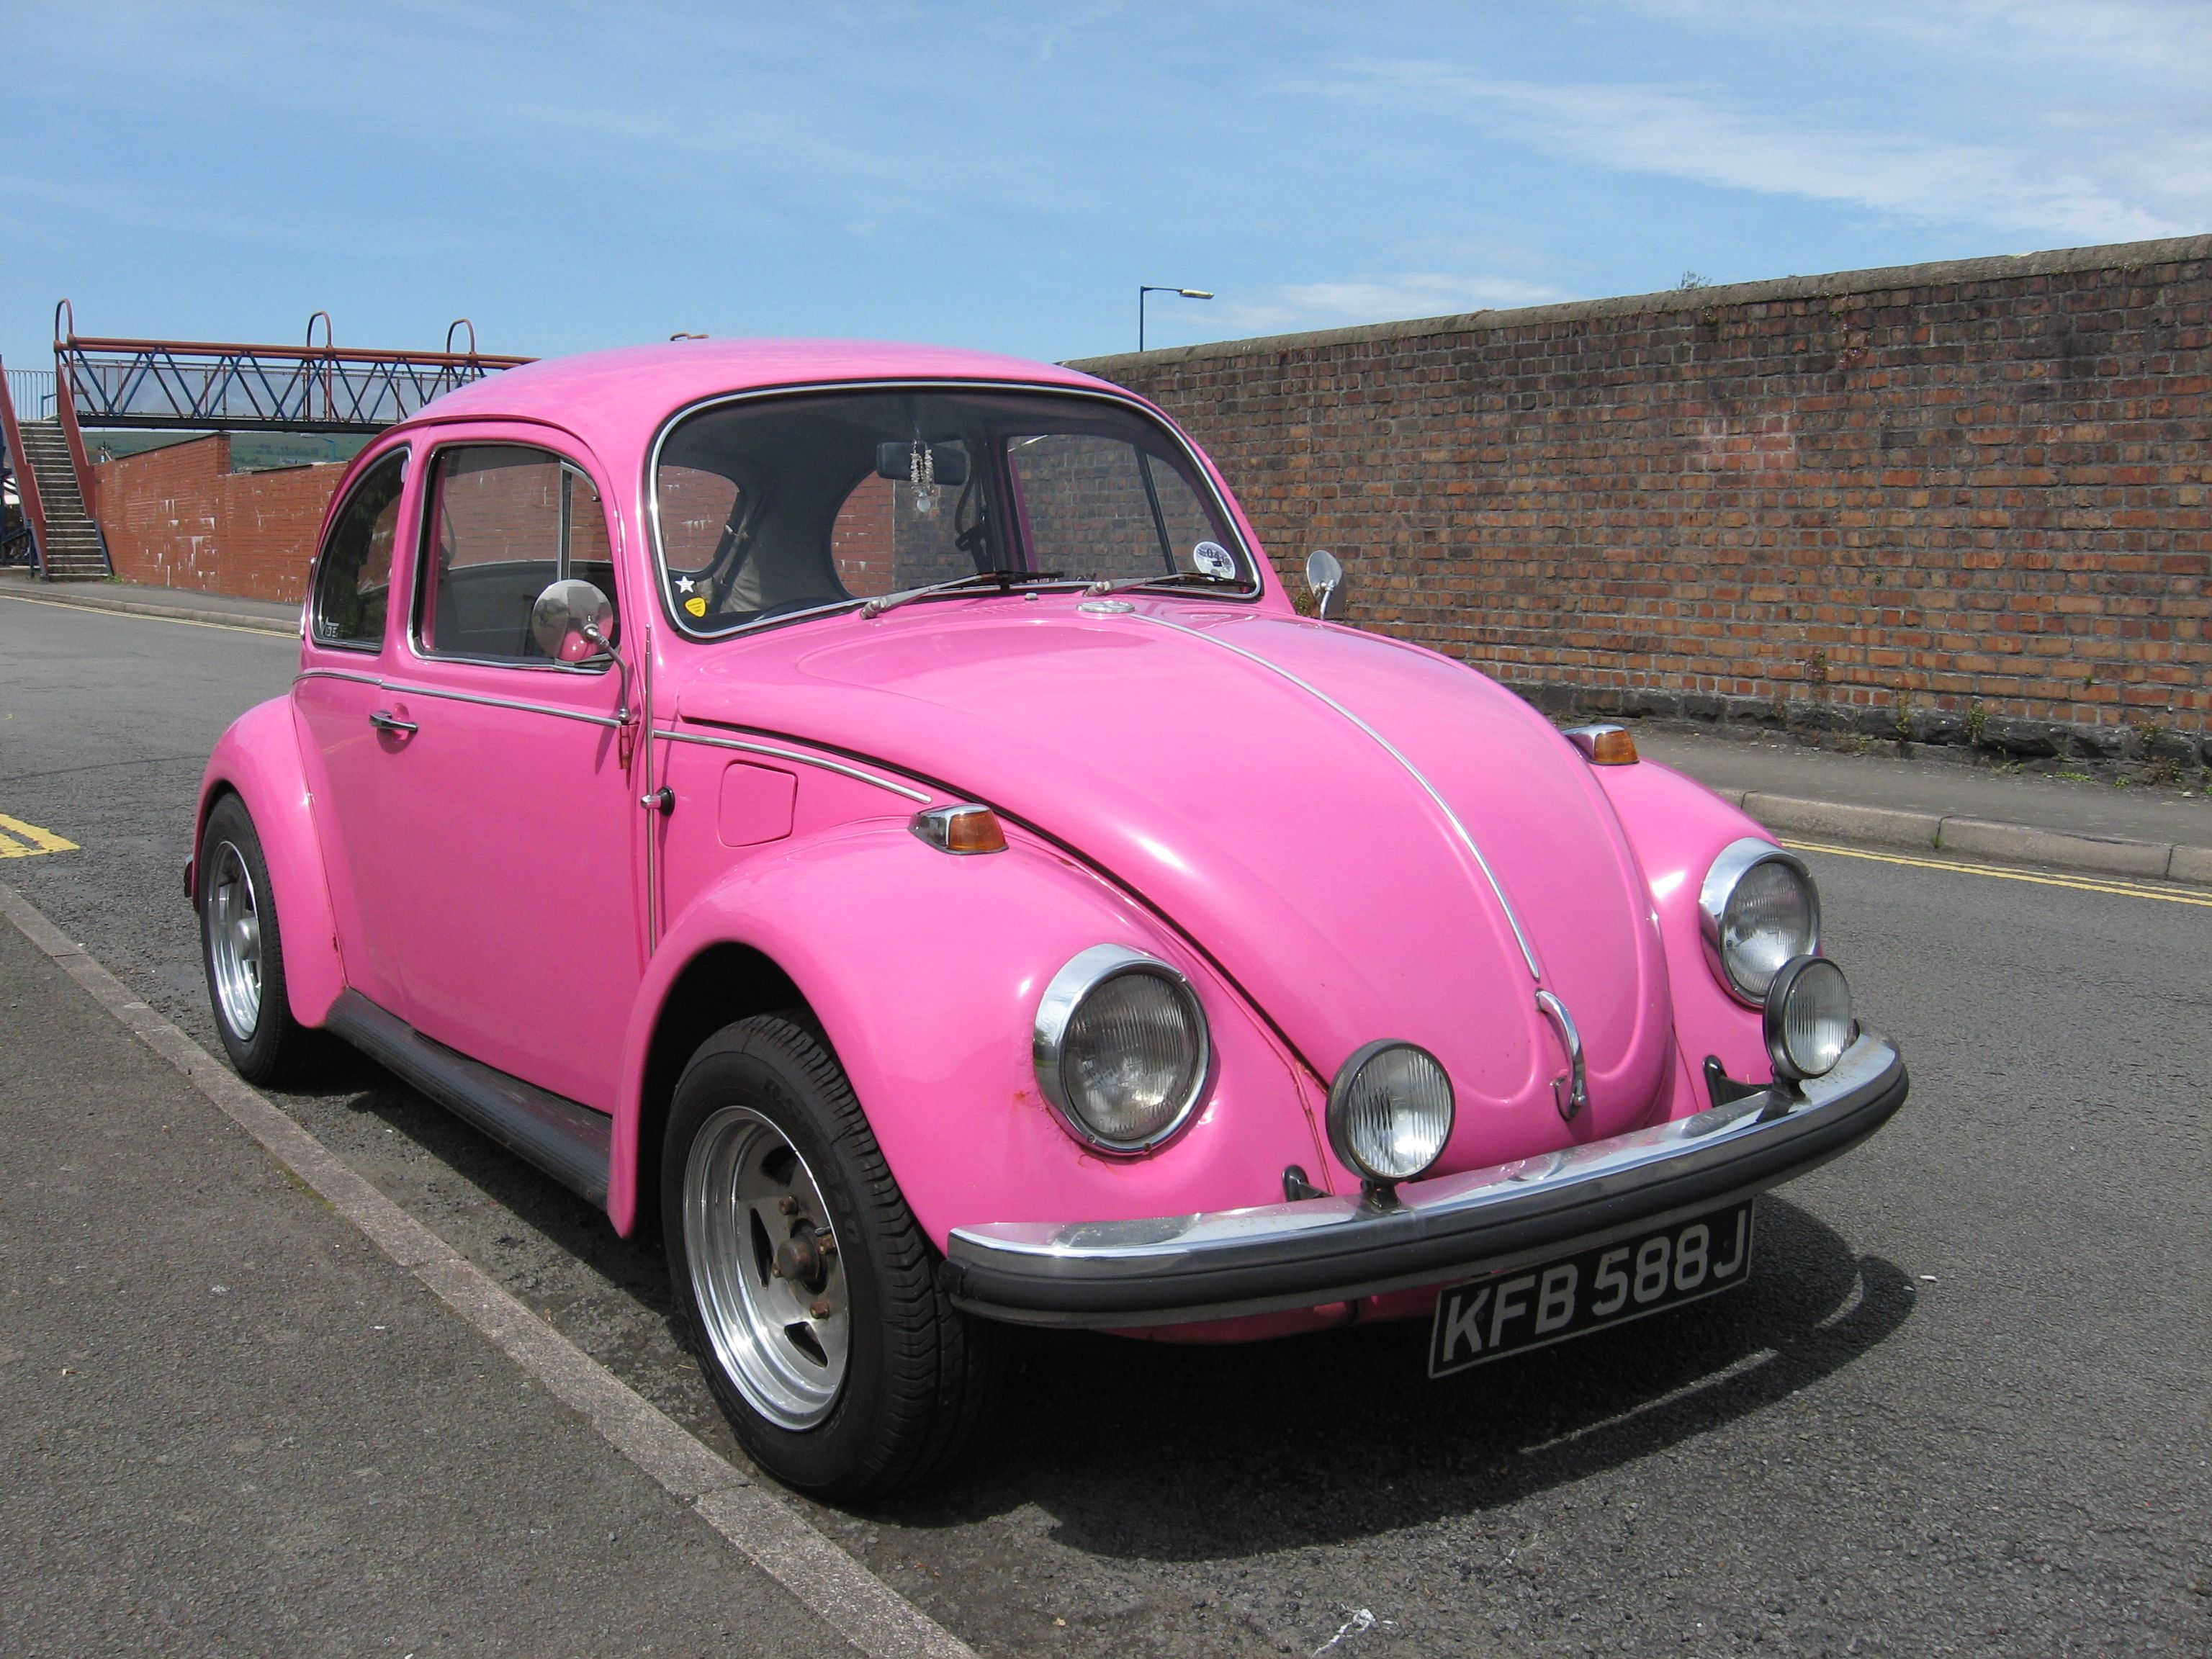 review drive pinkbeetle beetle coupe volkswagen test expert pink